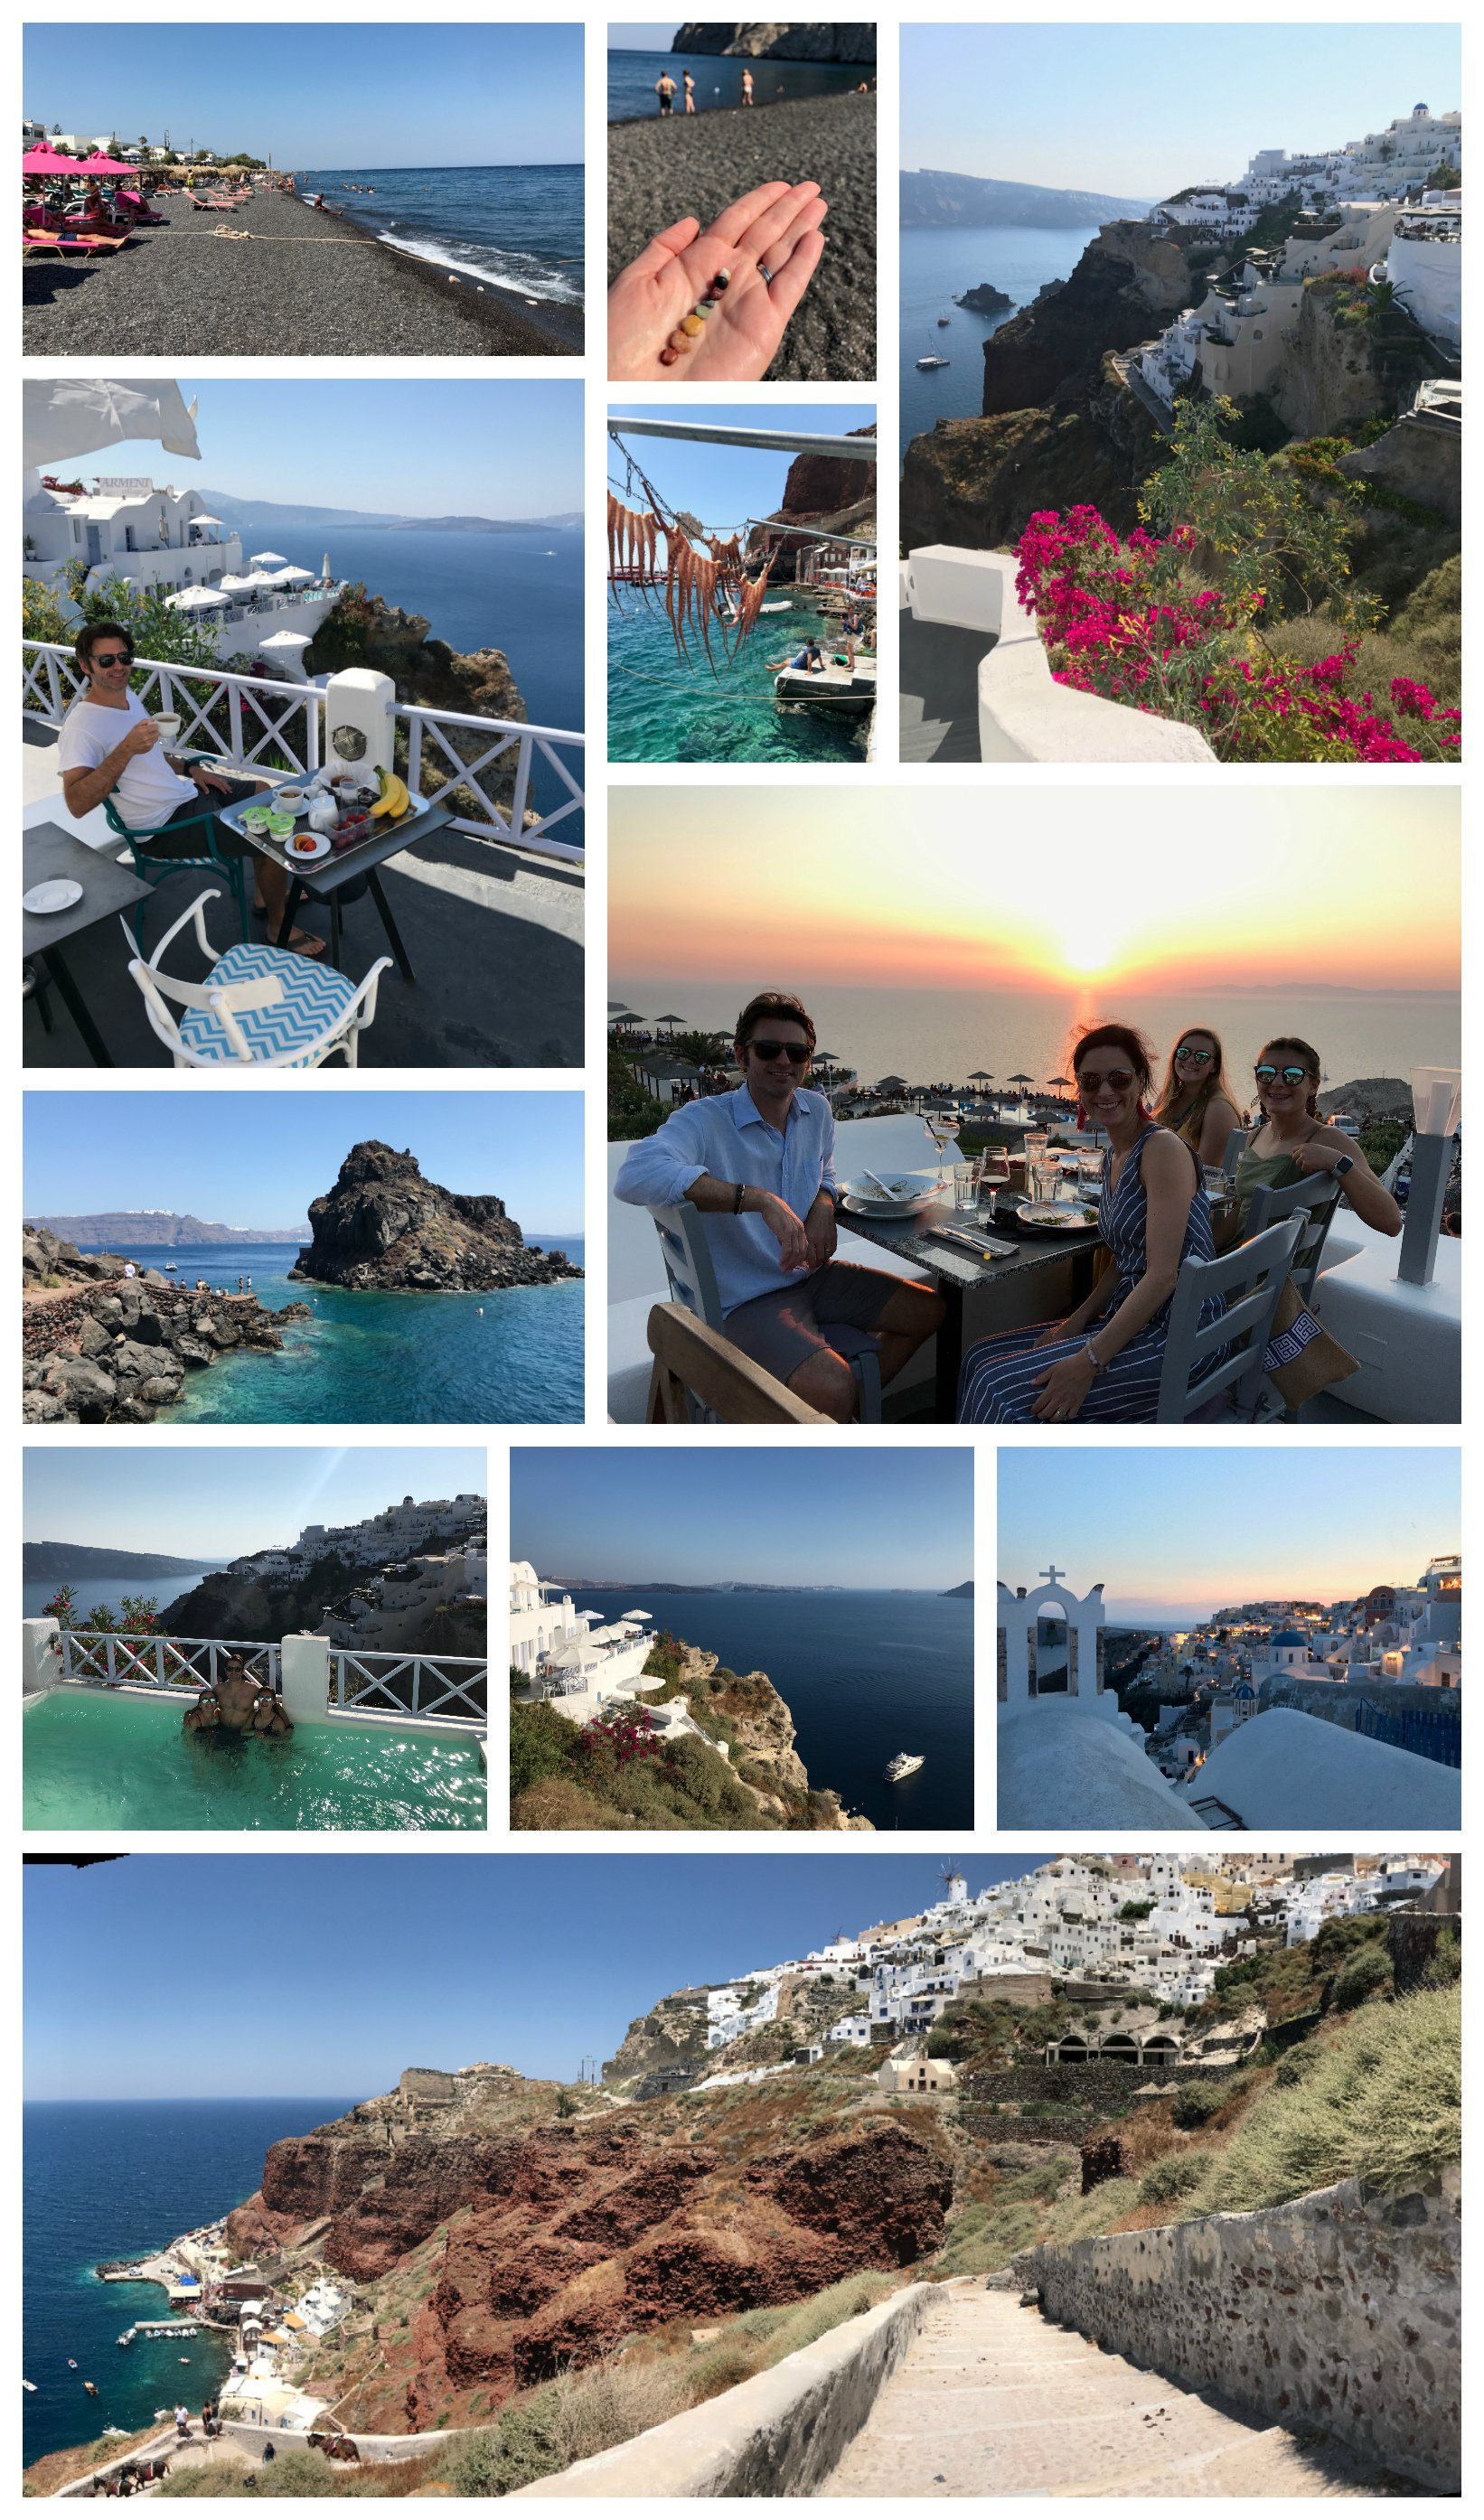 Santorini Greece Pictures on 100 Days of Real Food